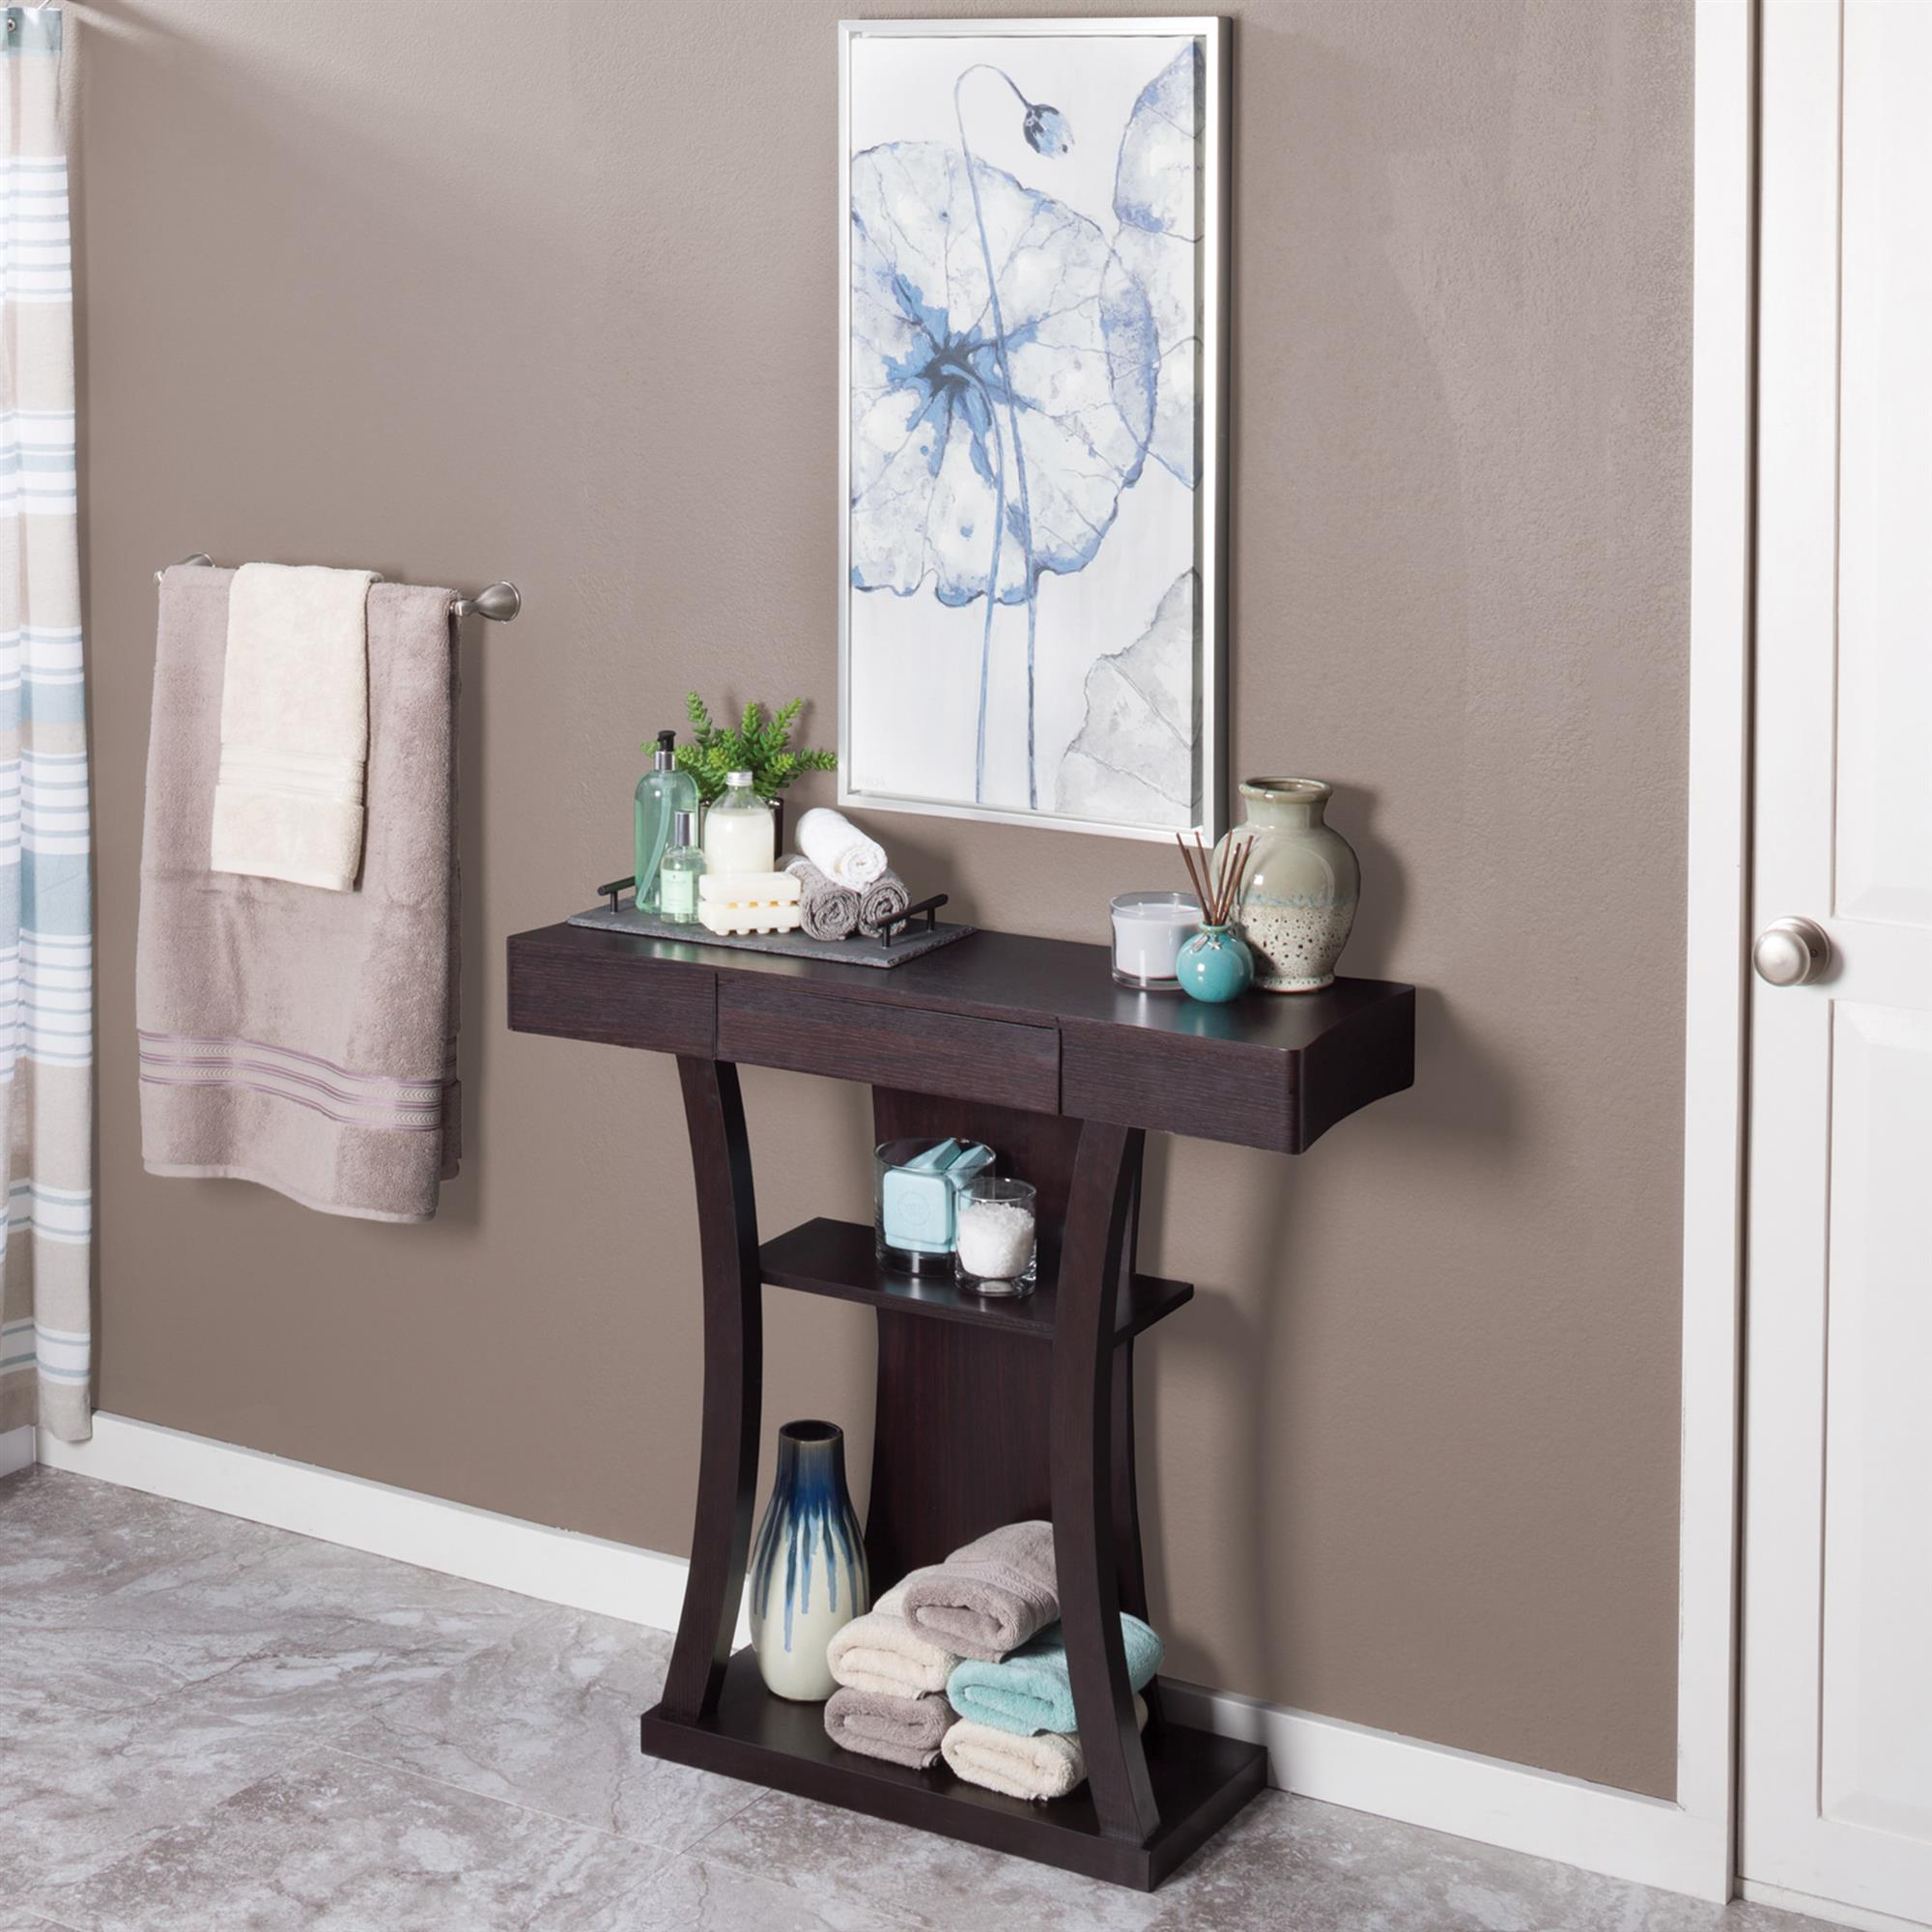 Small Space Bathroom Organization Tips